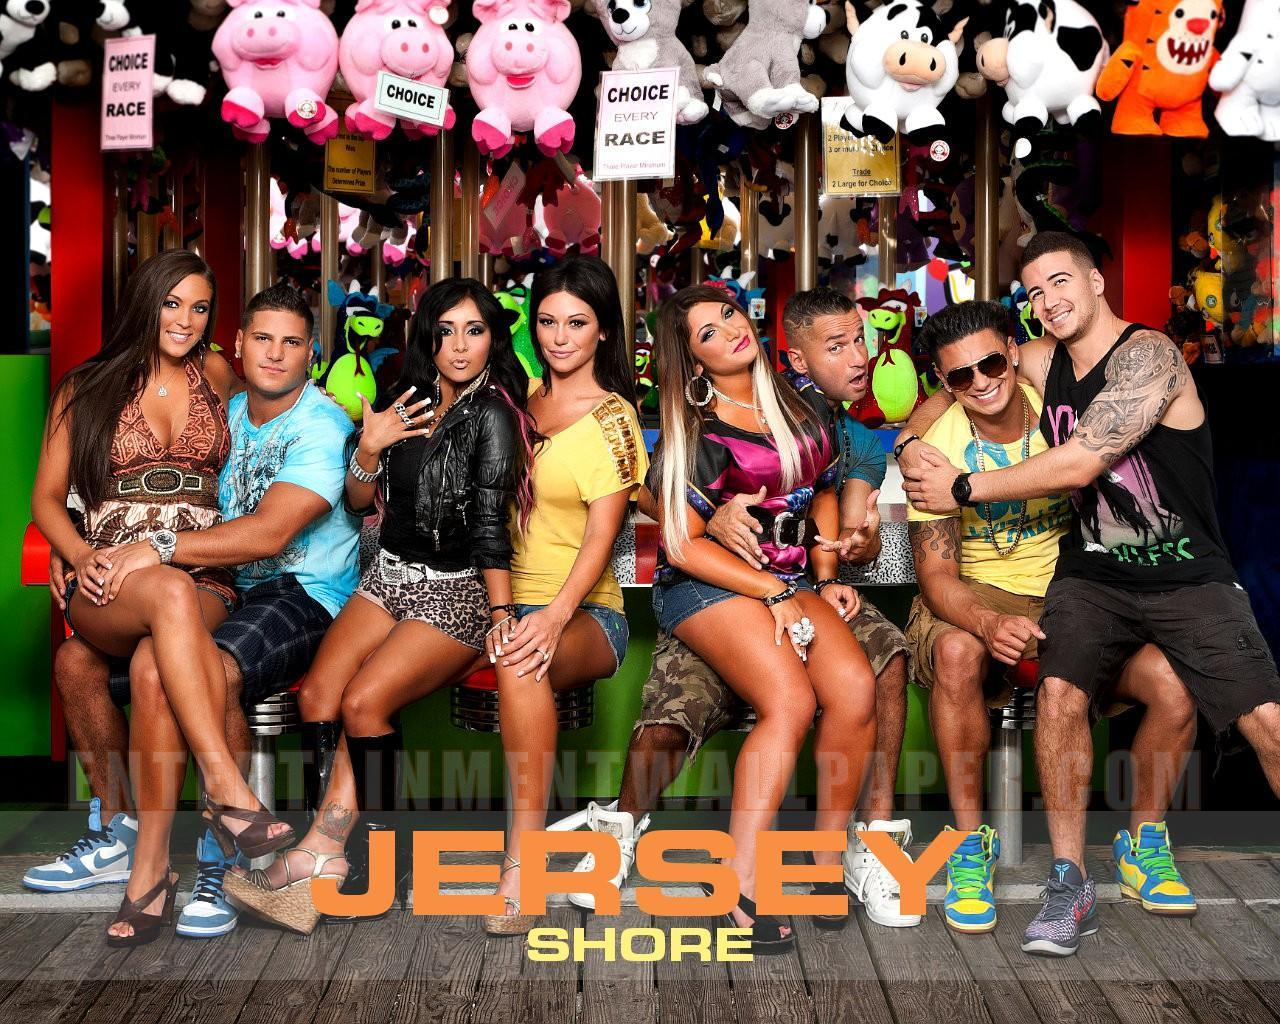 how well do you know jersey shore?